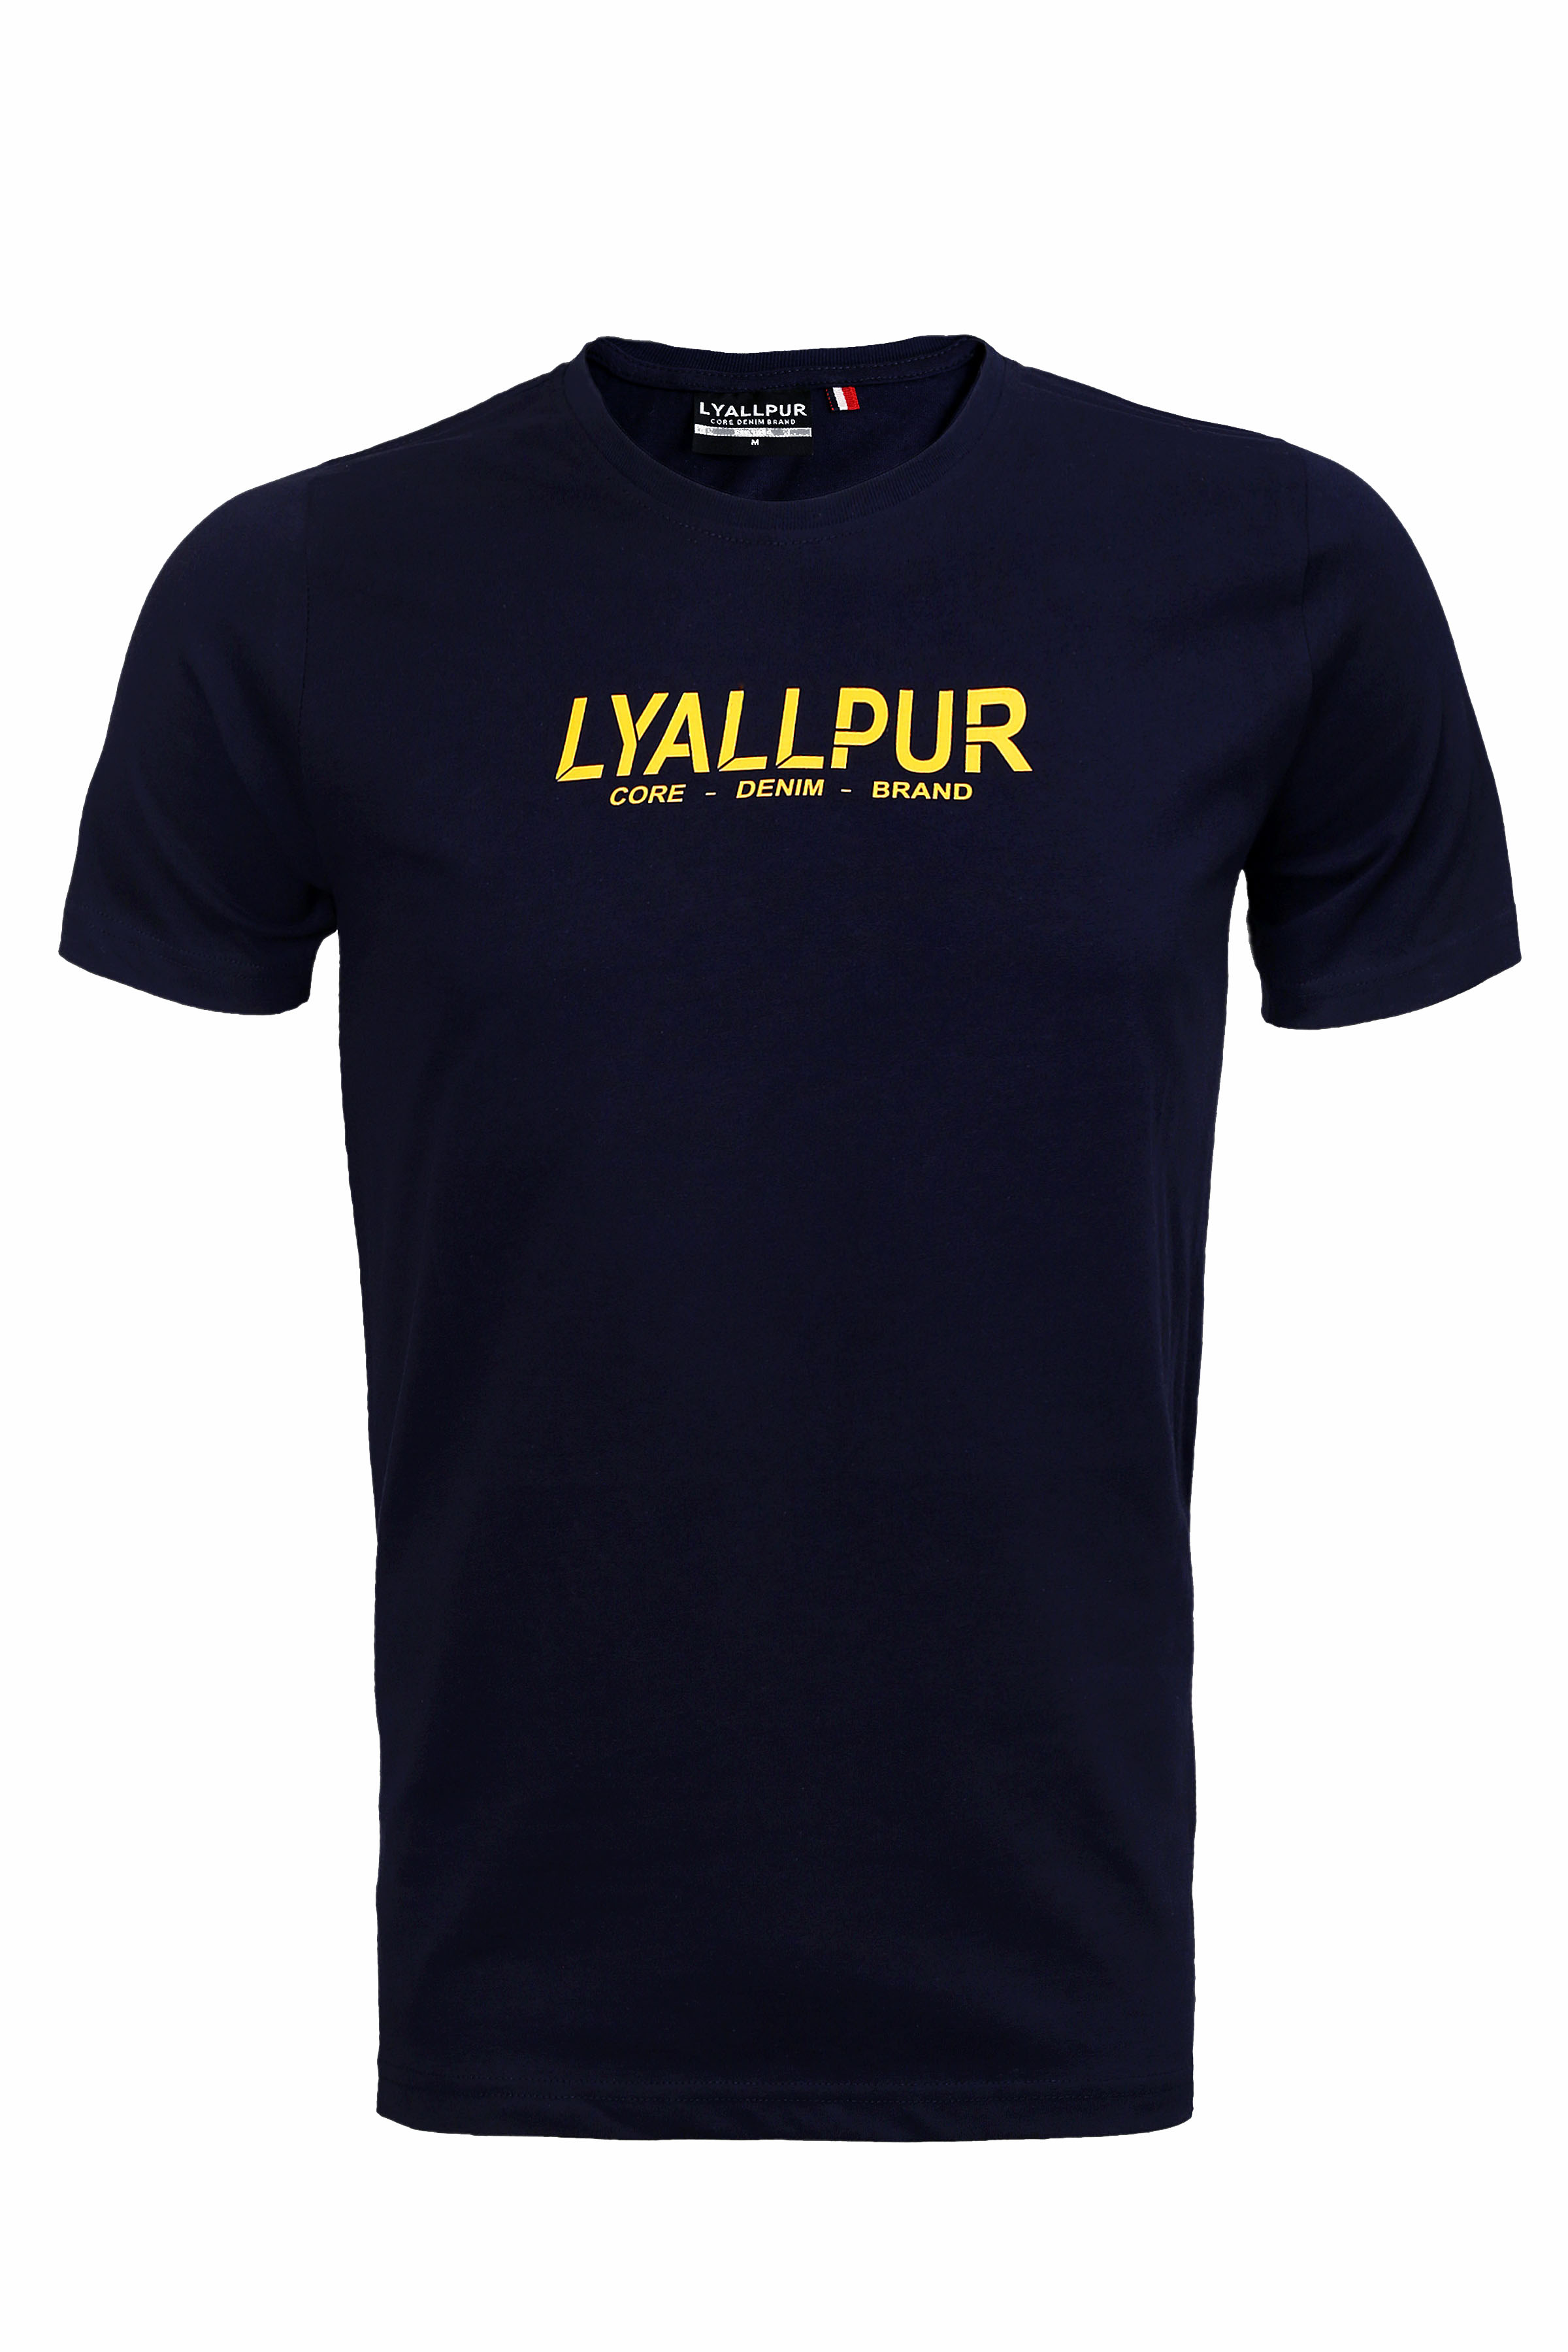 Mens T shirt  Short sleeve regular fit  Casual wear round neck tee shirt crew neck summer and spring wear t shirt top Navy  Winetasting Greymarl graceful fashionable colours  with high density raised print quality and back neck half moon.